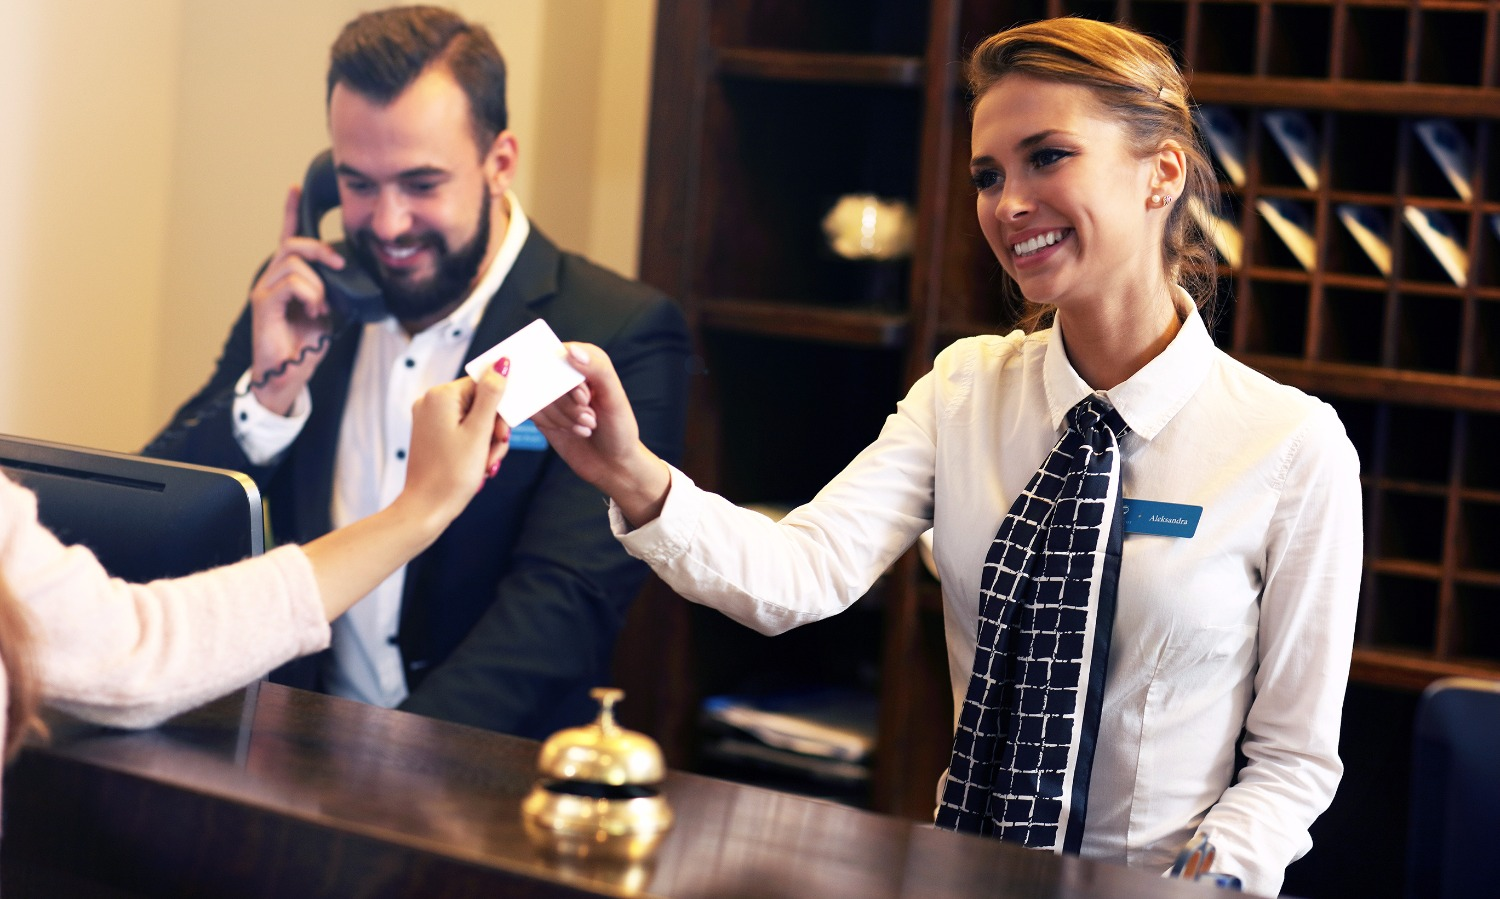 Picture of guests getting key card in hotel_edited